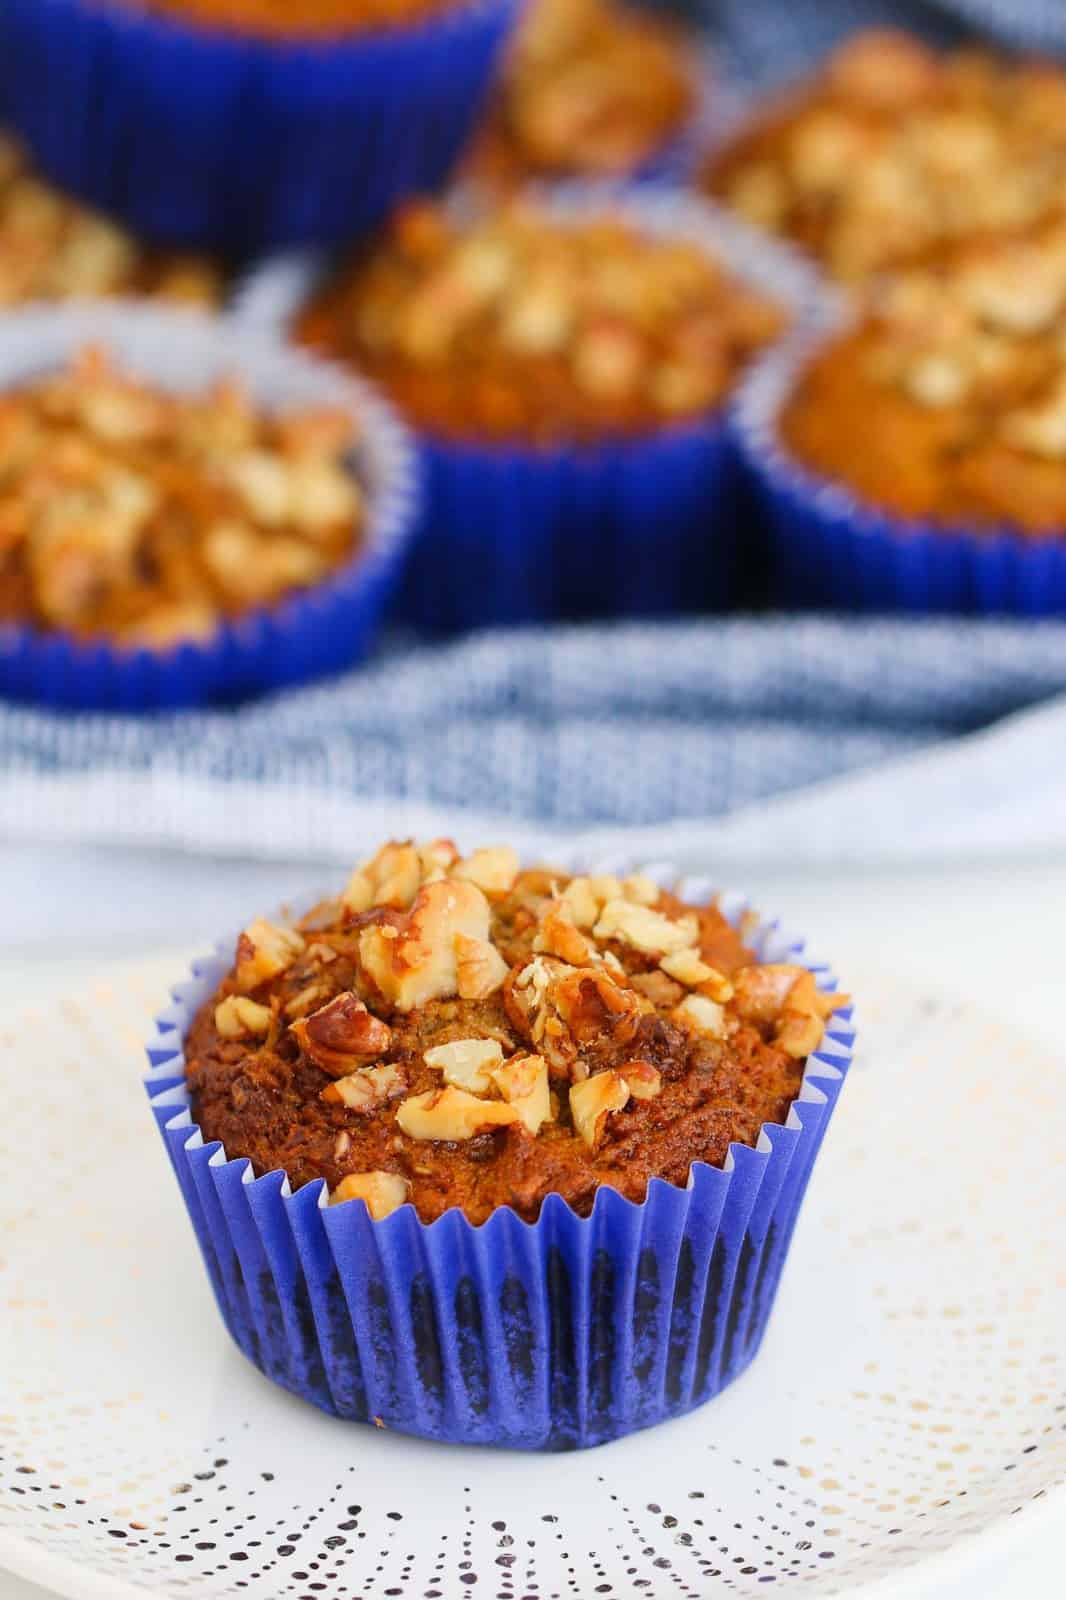 A carrot muffin with nuts on top.